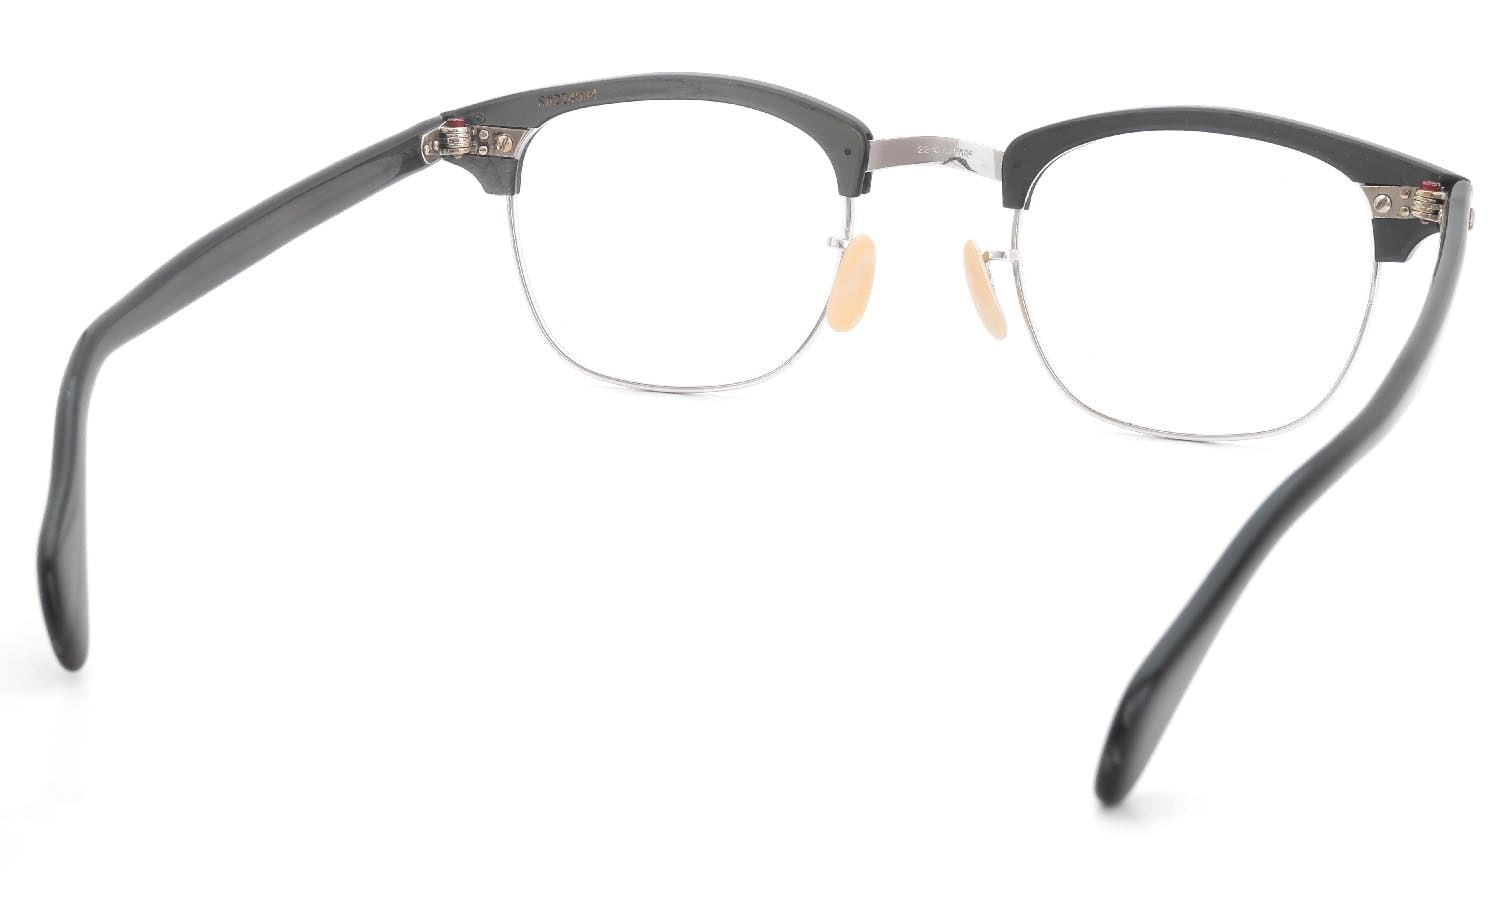 American Optical 1950s〜1960s SIRMONT Gry-WG 1/10 12KGF 46-22